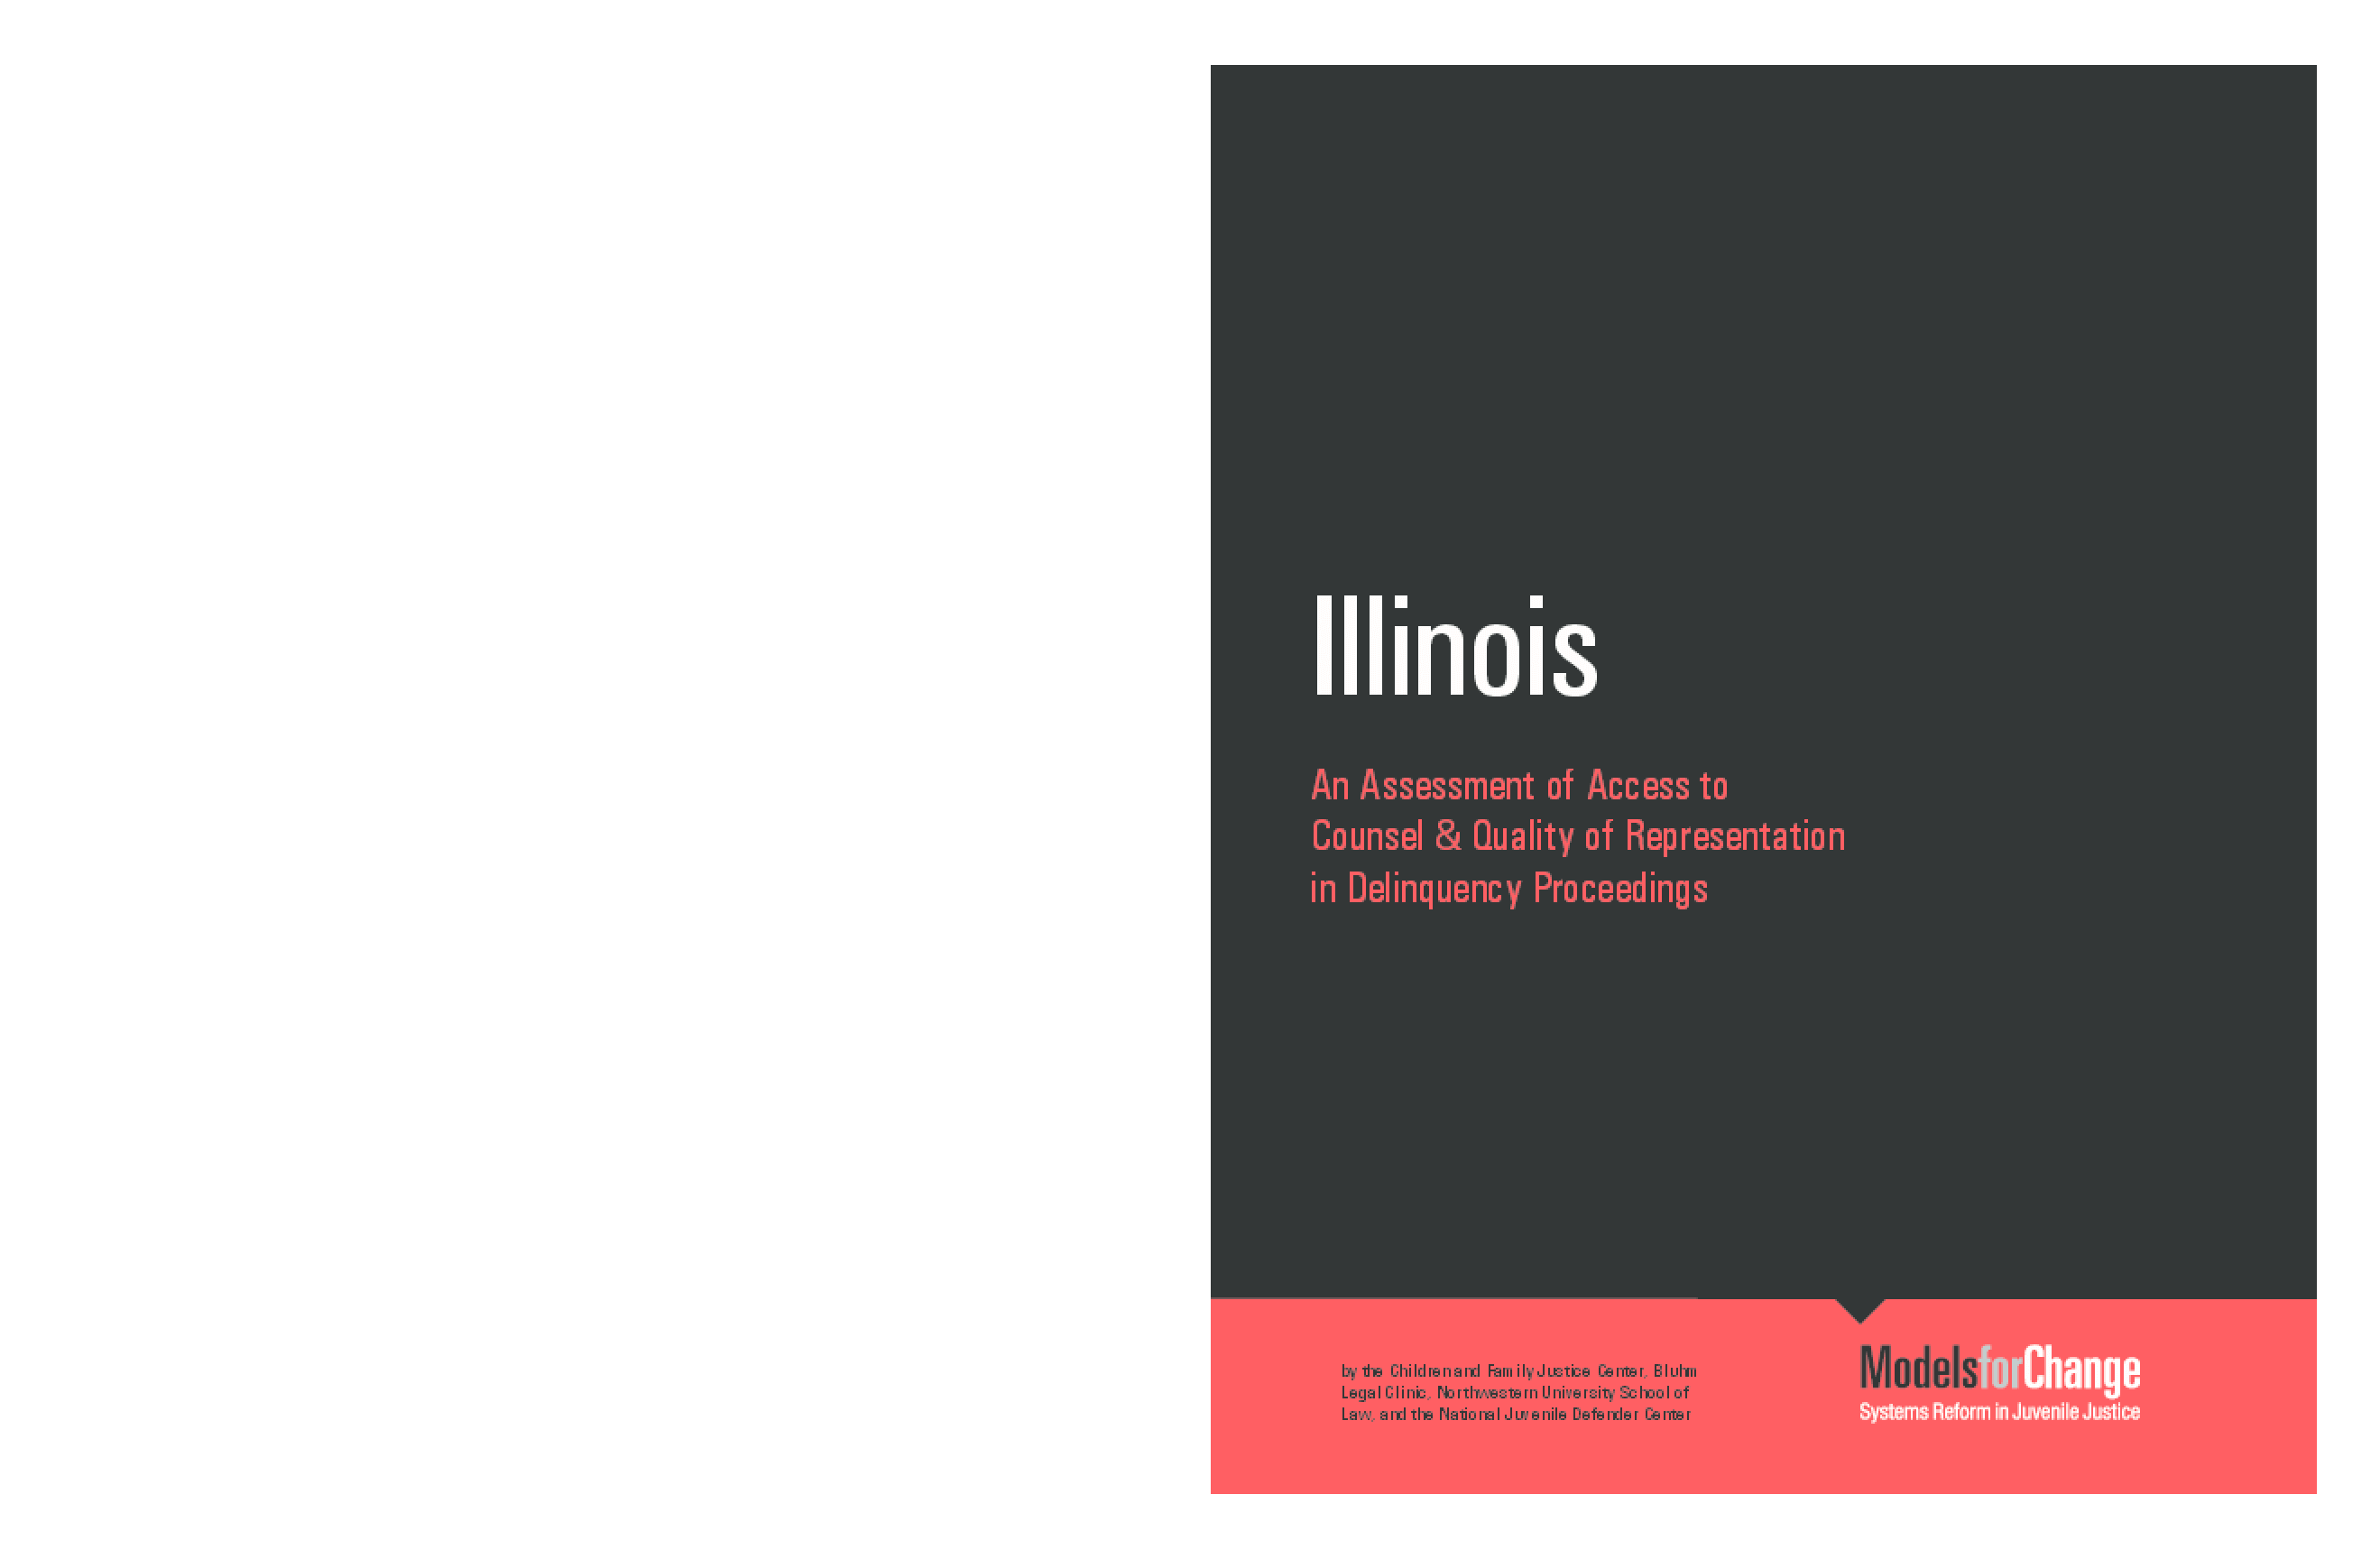 Illinois: An Assessment of Access to Counsel & Quality or Representation in Delinquency Proceedings